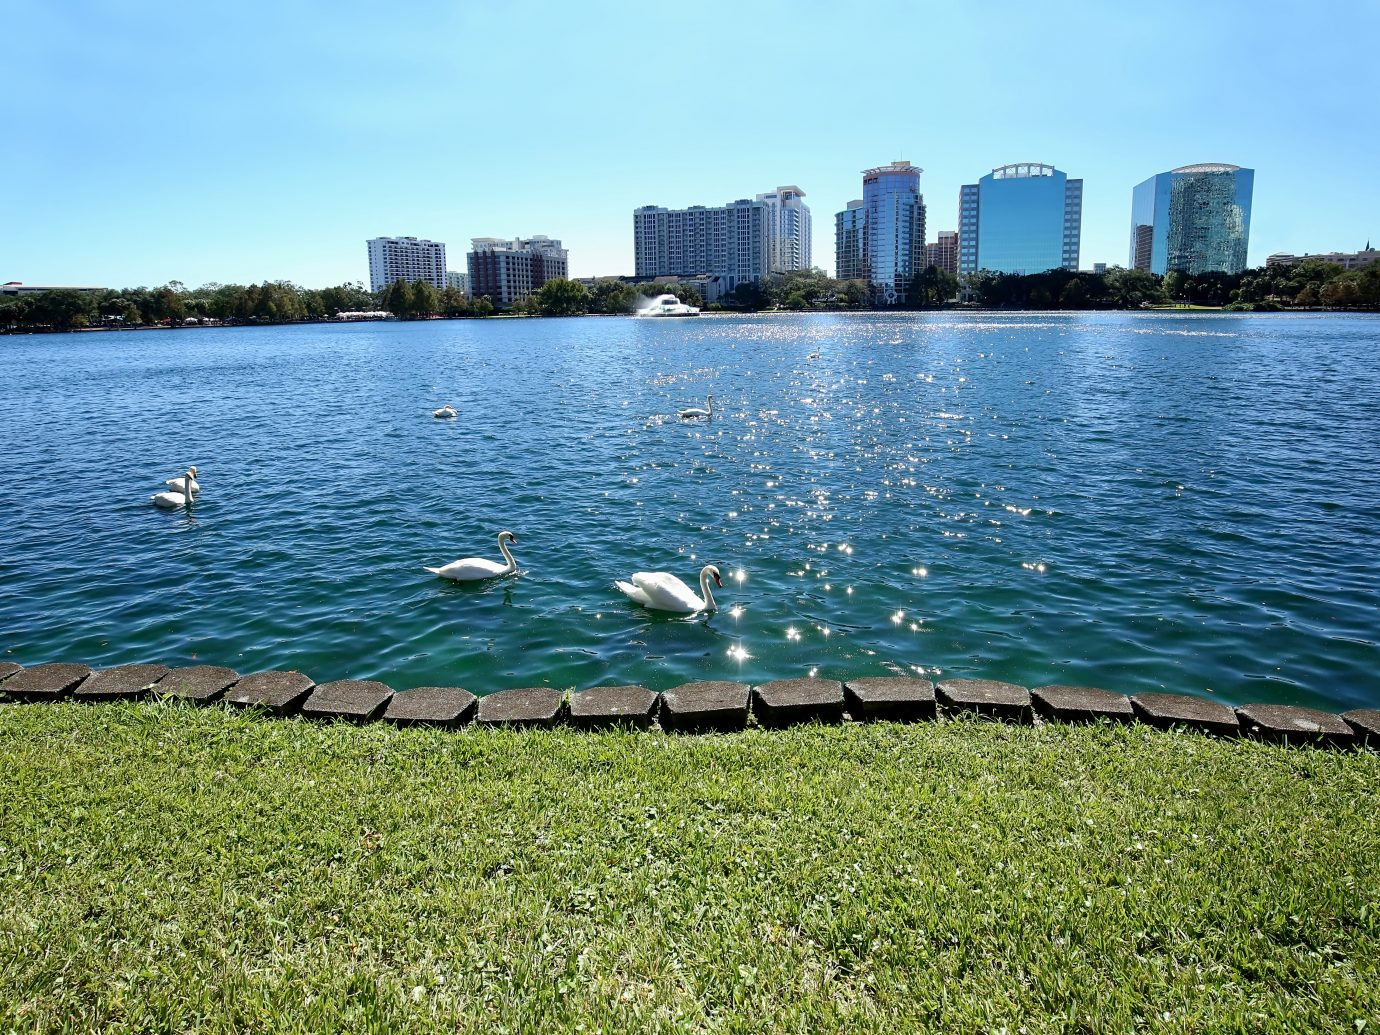 Muet swans glide in the glistening waters of Lake Eola Park a popular destination in Orlando, Florida.